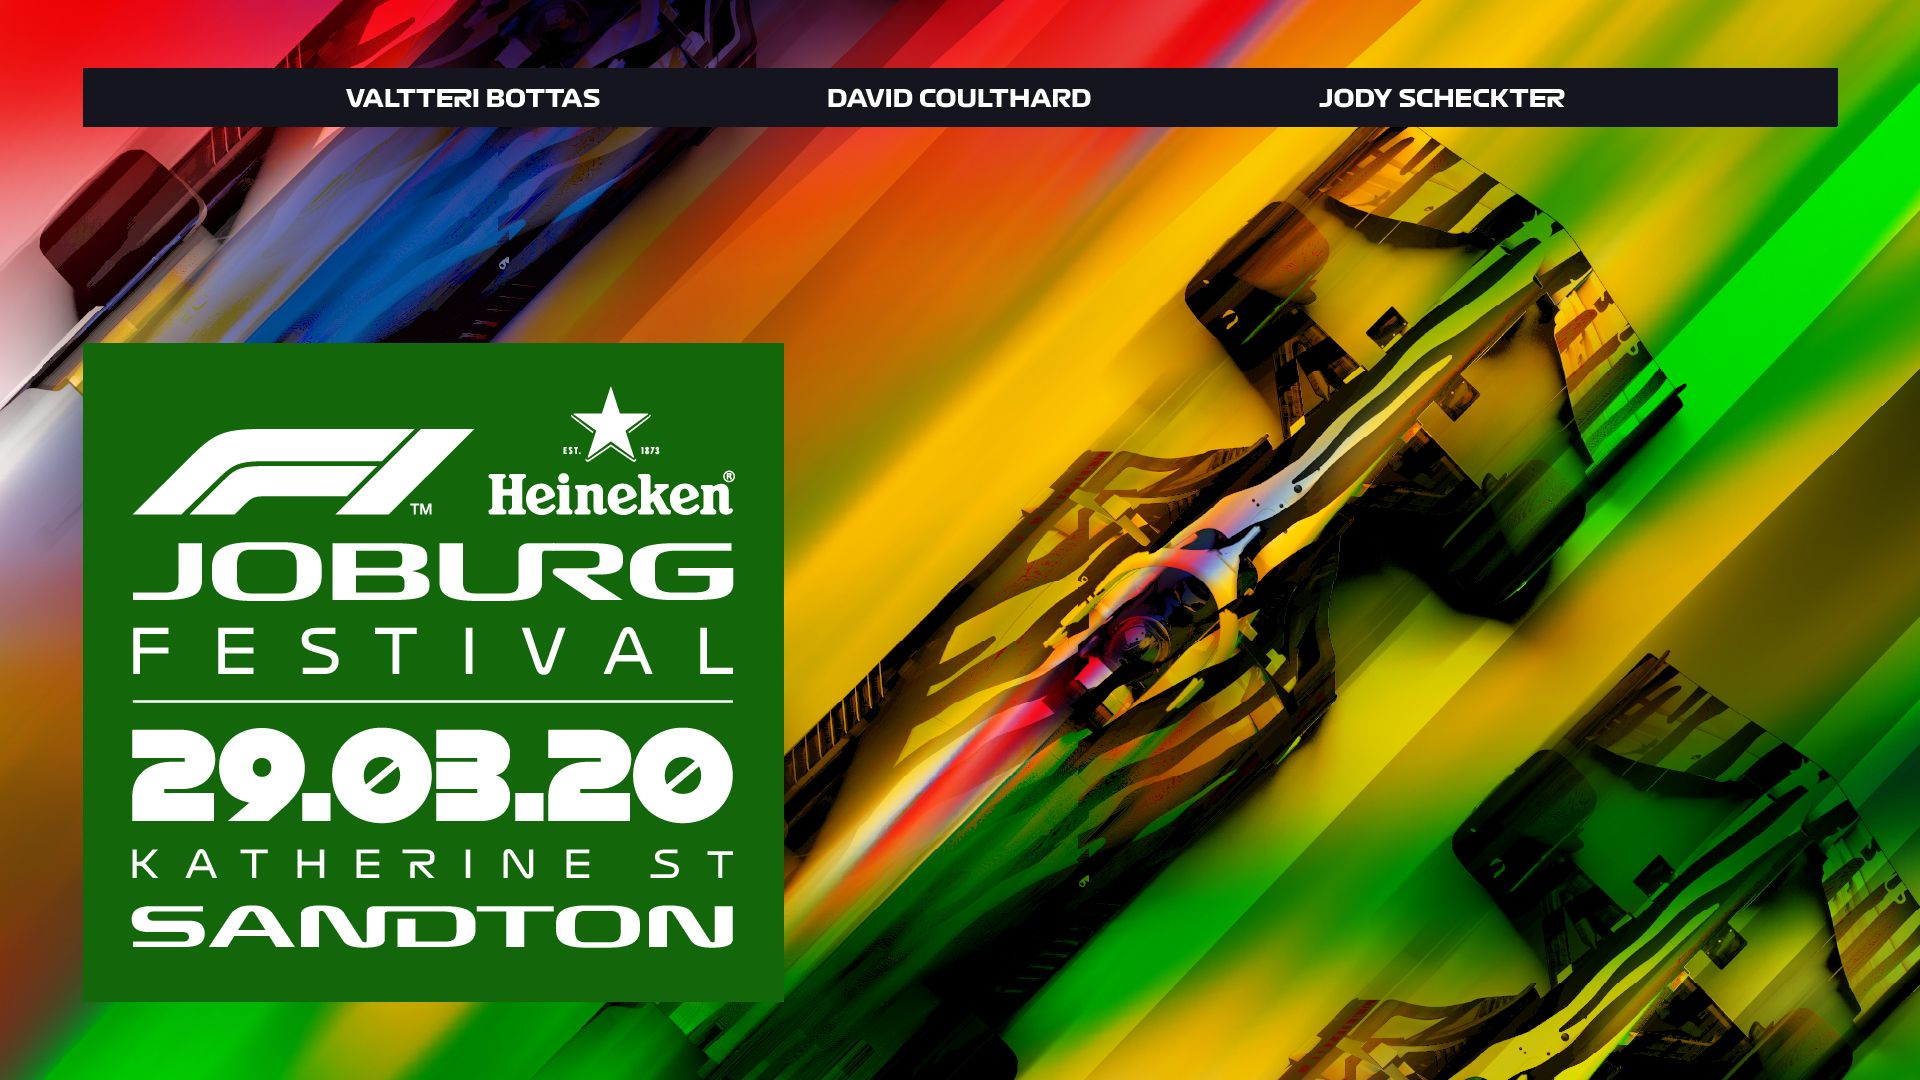 F1 And Heineken To Bring Spectacle Of Racing Back To South Africa With Joburg Festival photo